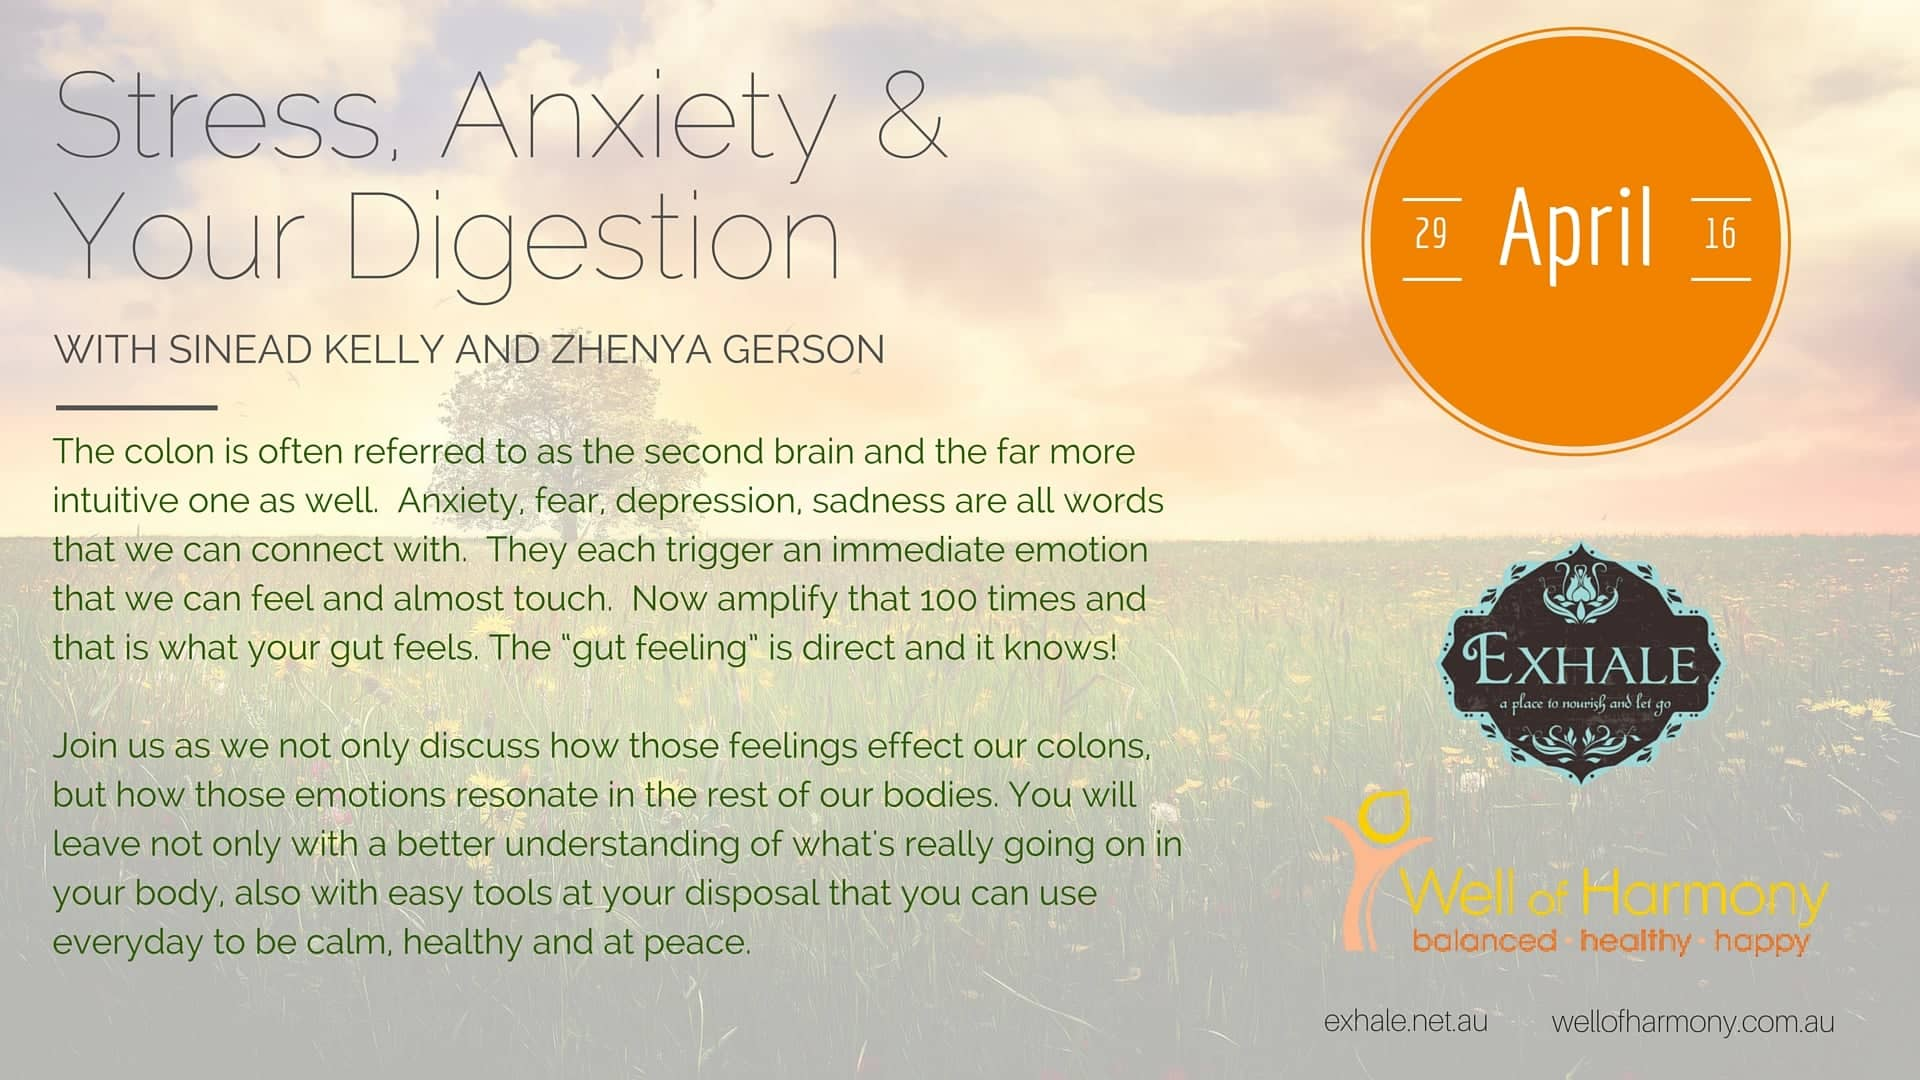 Stress, Anxiety and Your Digestion Workshop